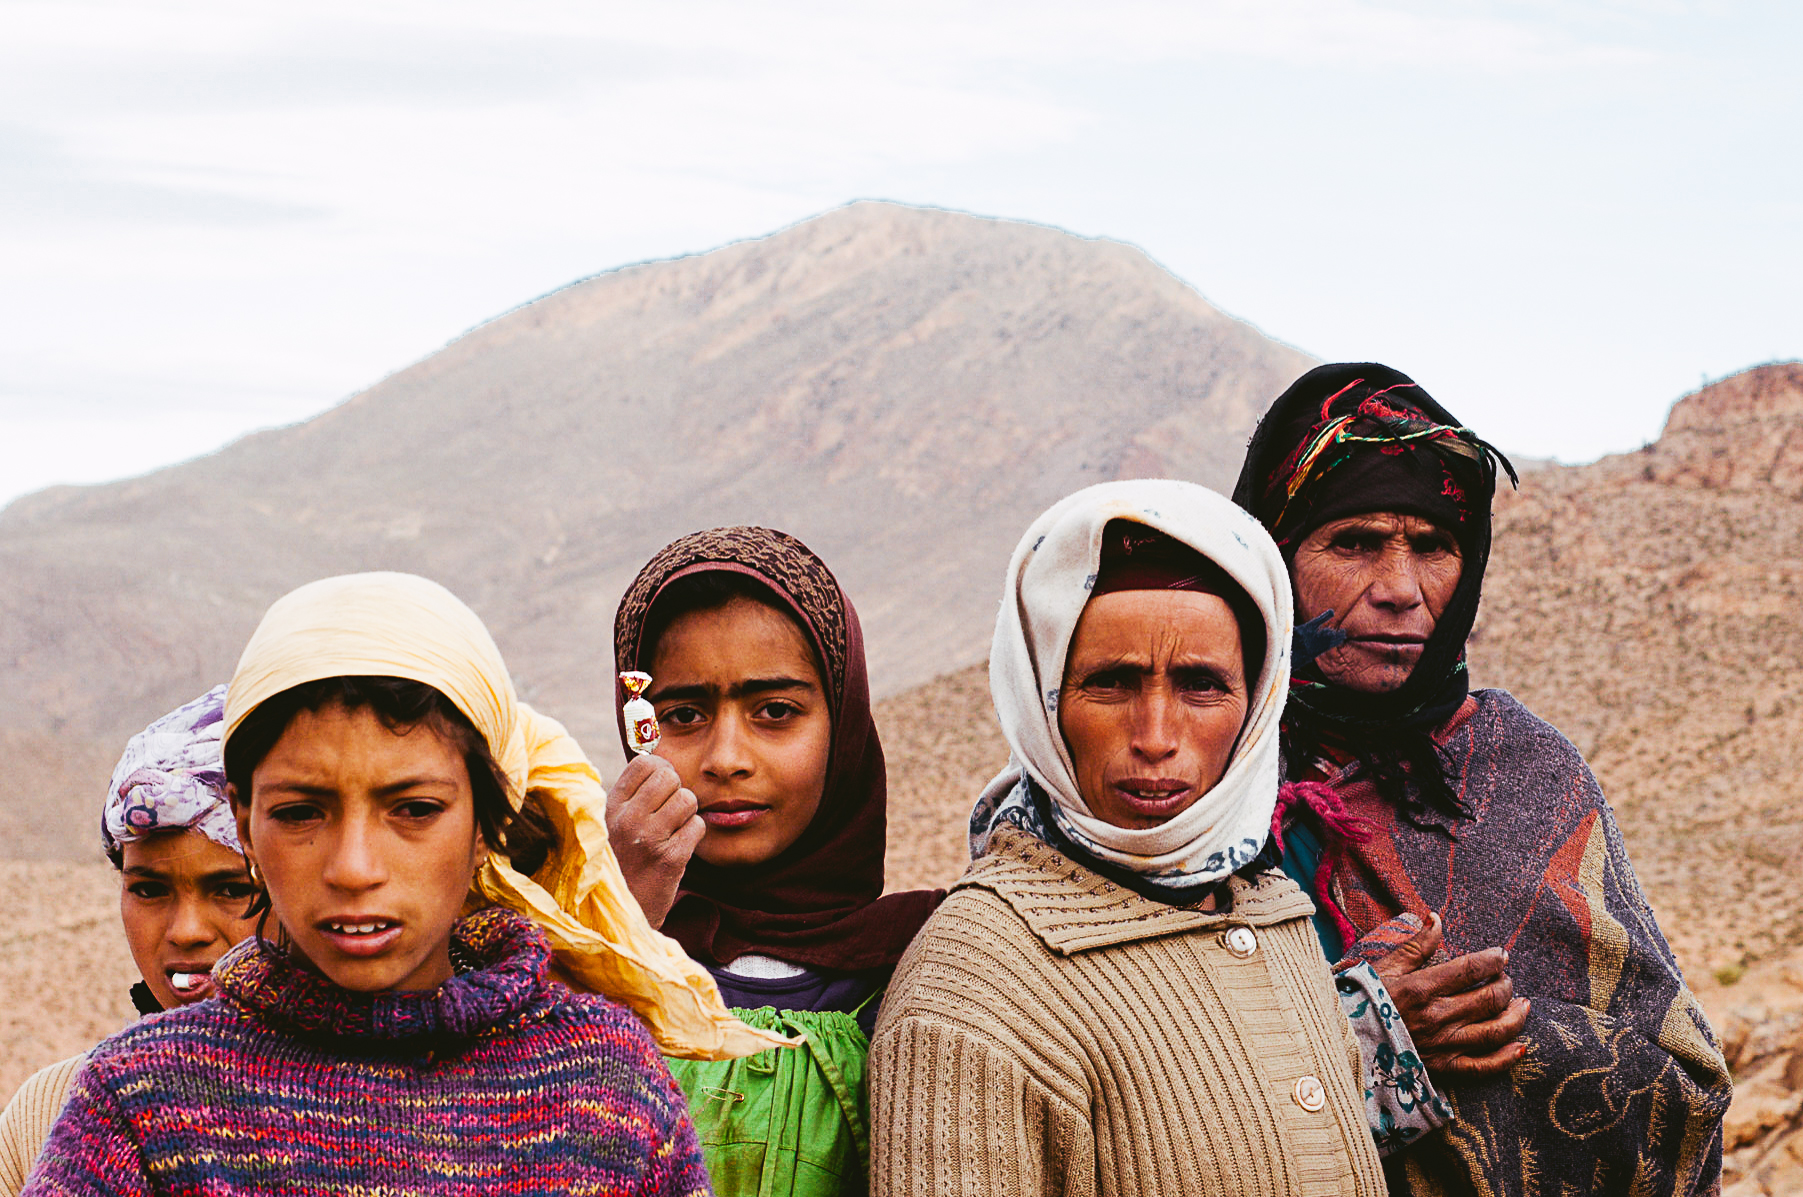 A nomadic family moving in between villages.